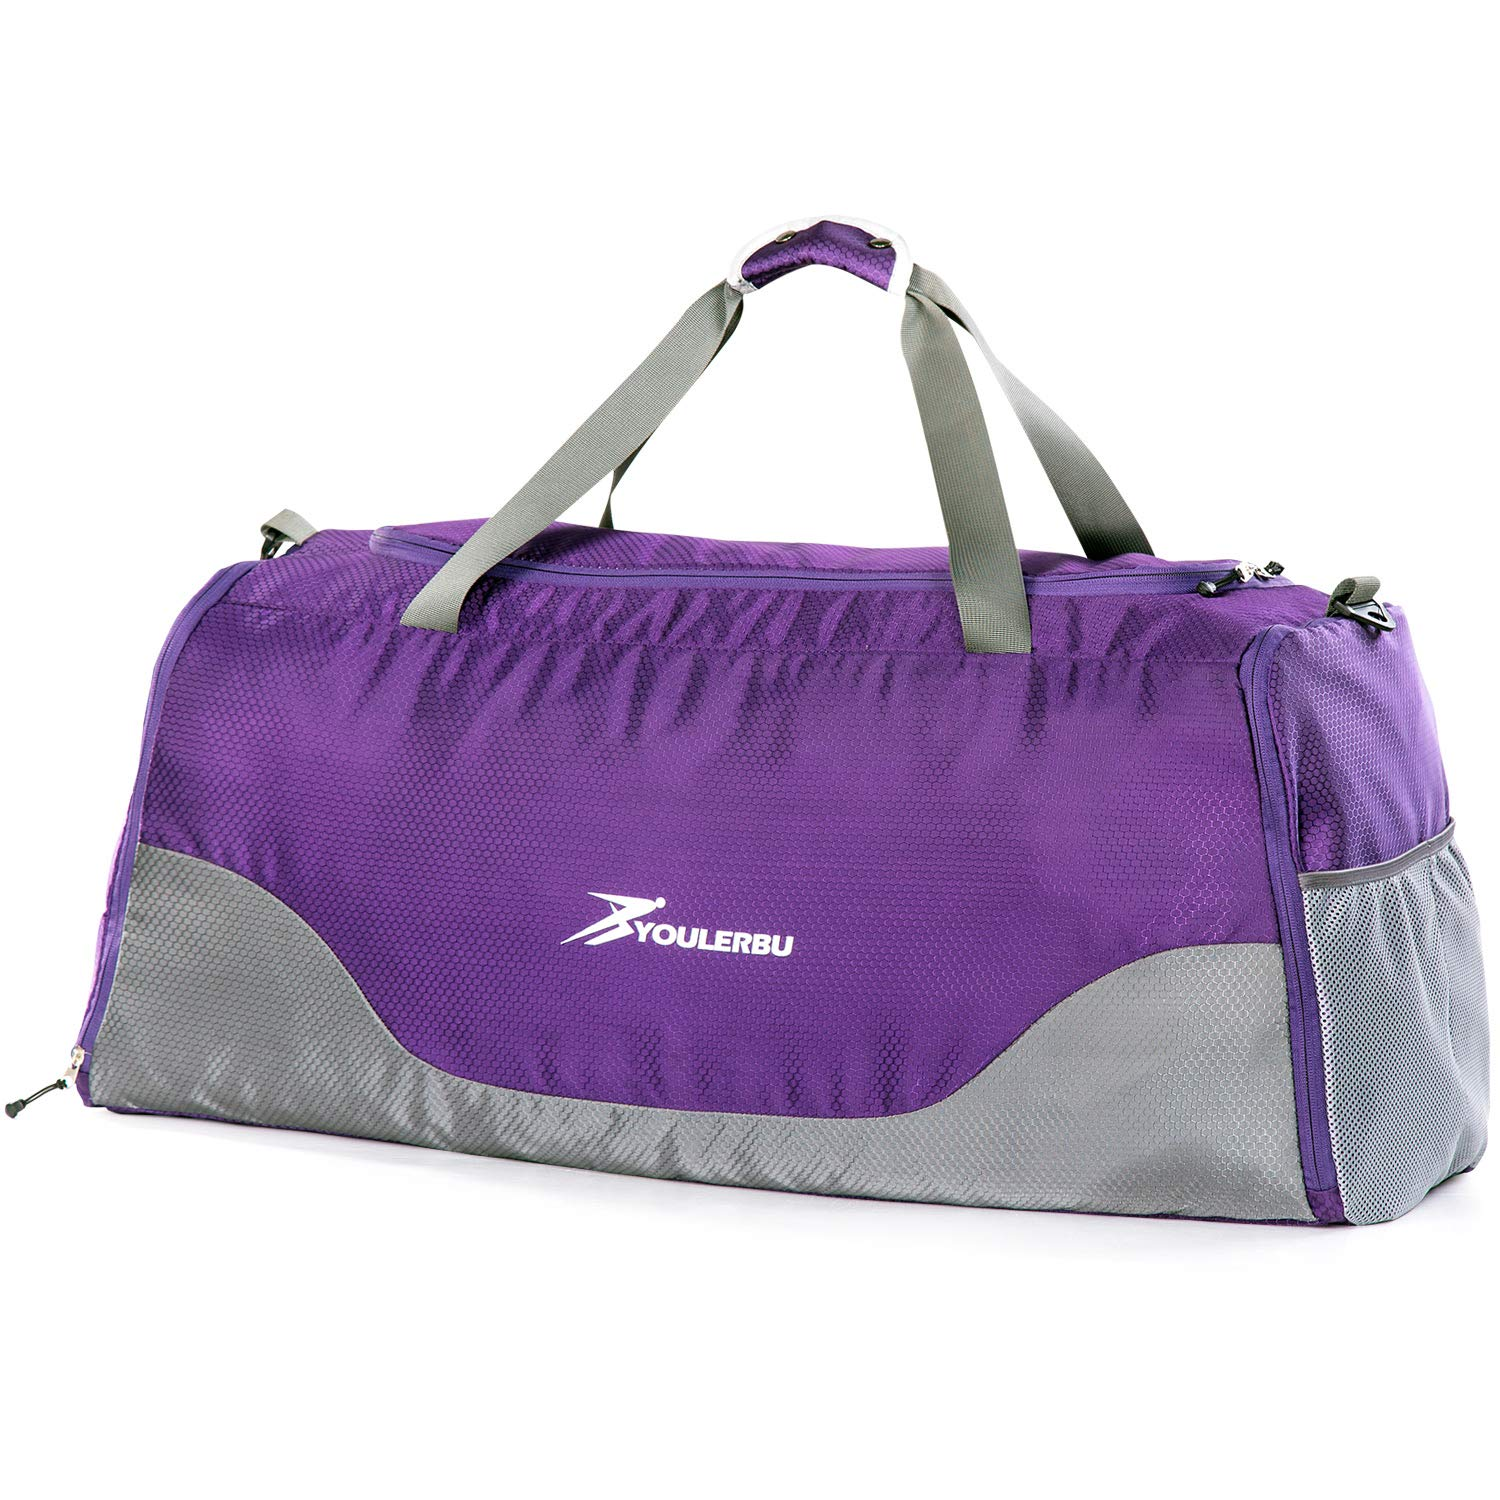 YOULERBU 70L Large Foldable Duffel Bag With Wet Pocket, Gym Bag With Shoes Compartment For Men & Women